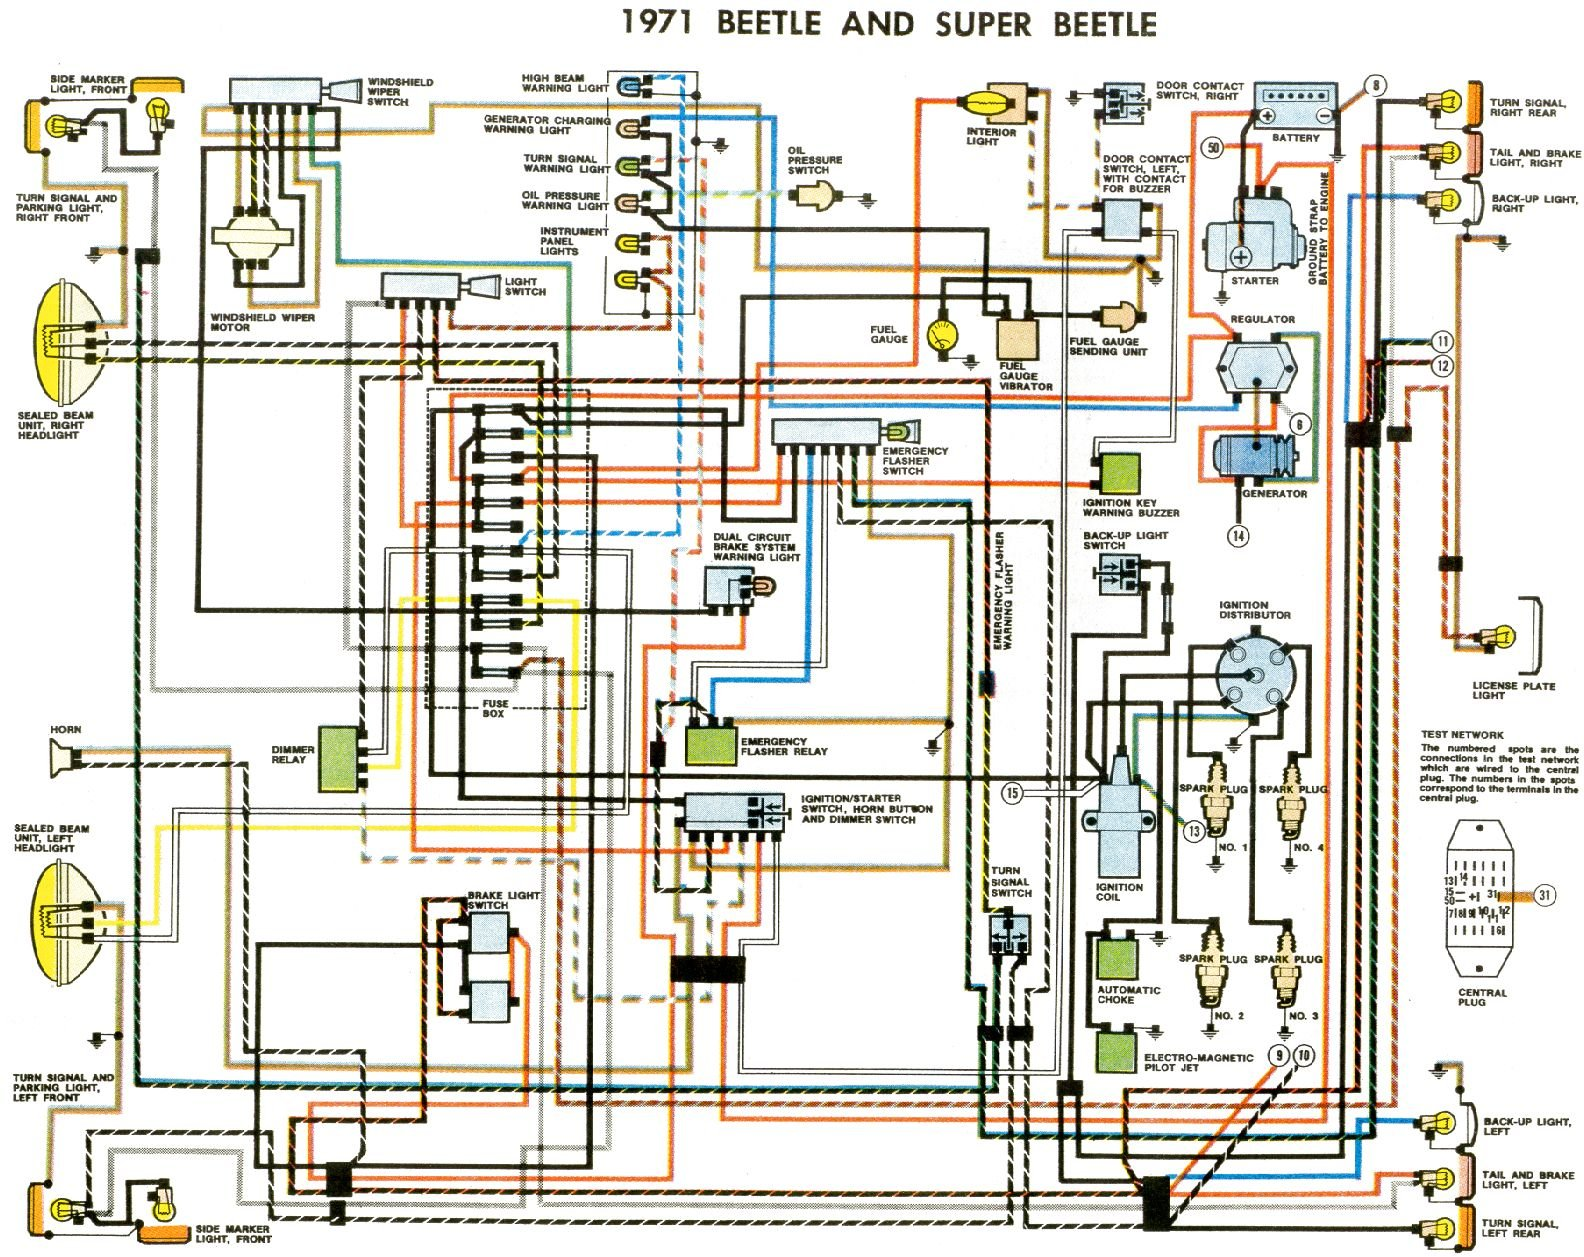 Lightswitch together with Chevrolet Malibu Heat And Ac Control likewise Hqdefault moreover Chevywiperdiagram further W Wiper. on 1979 corvette fuse box diagram